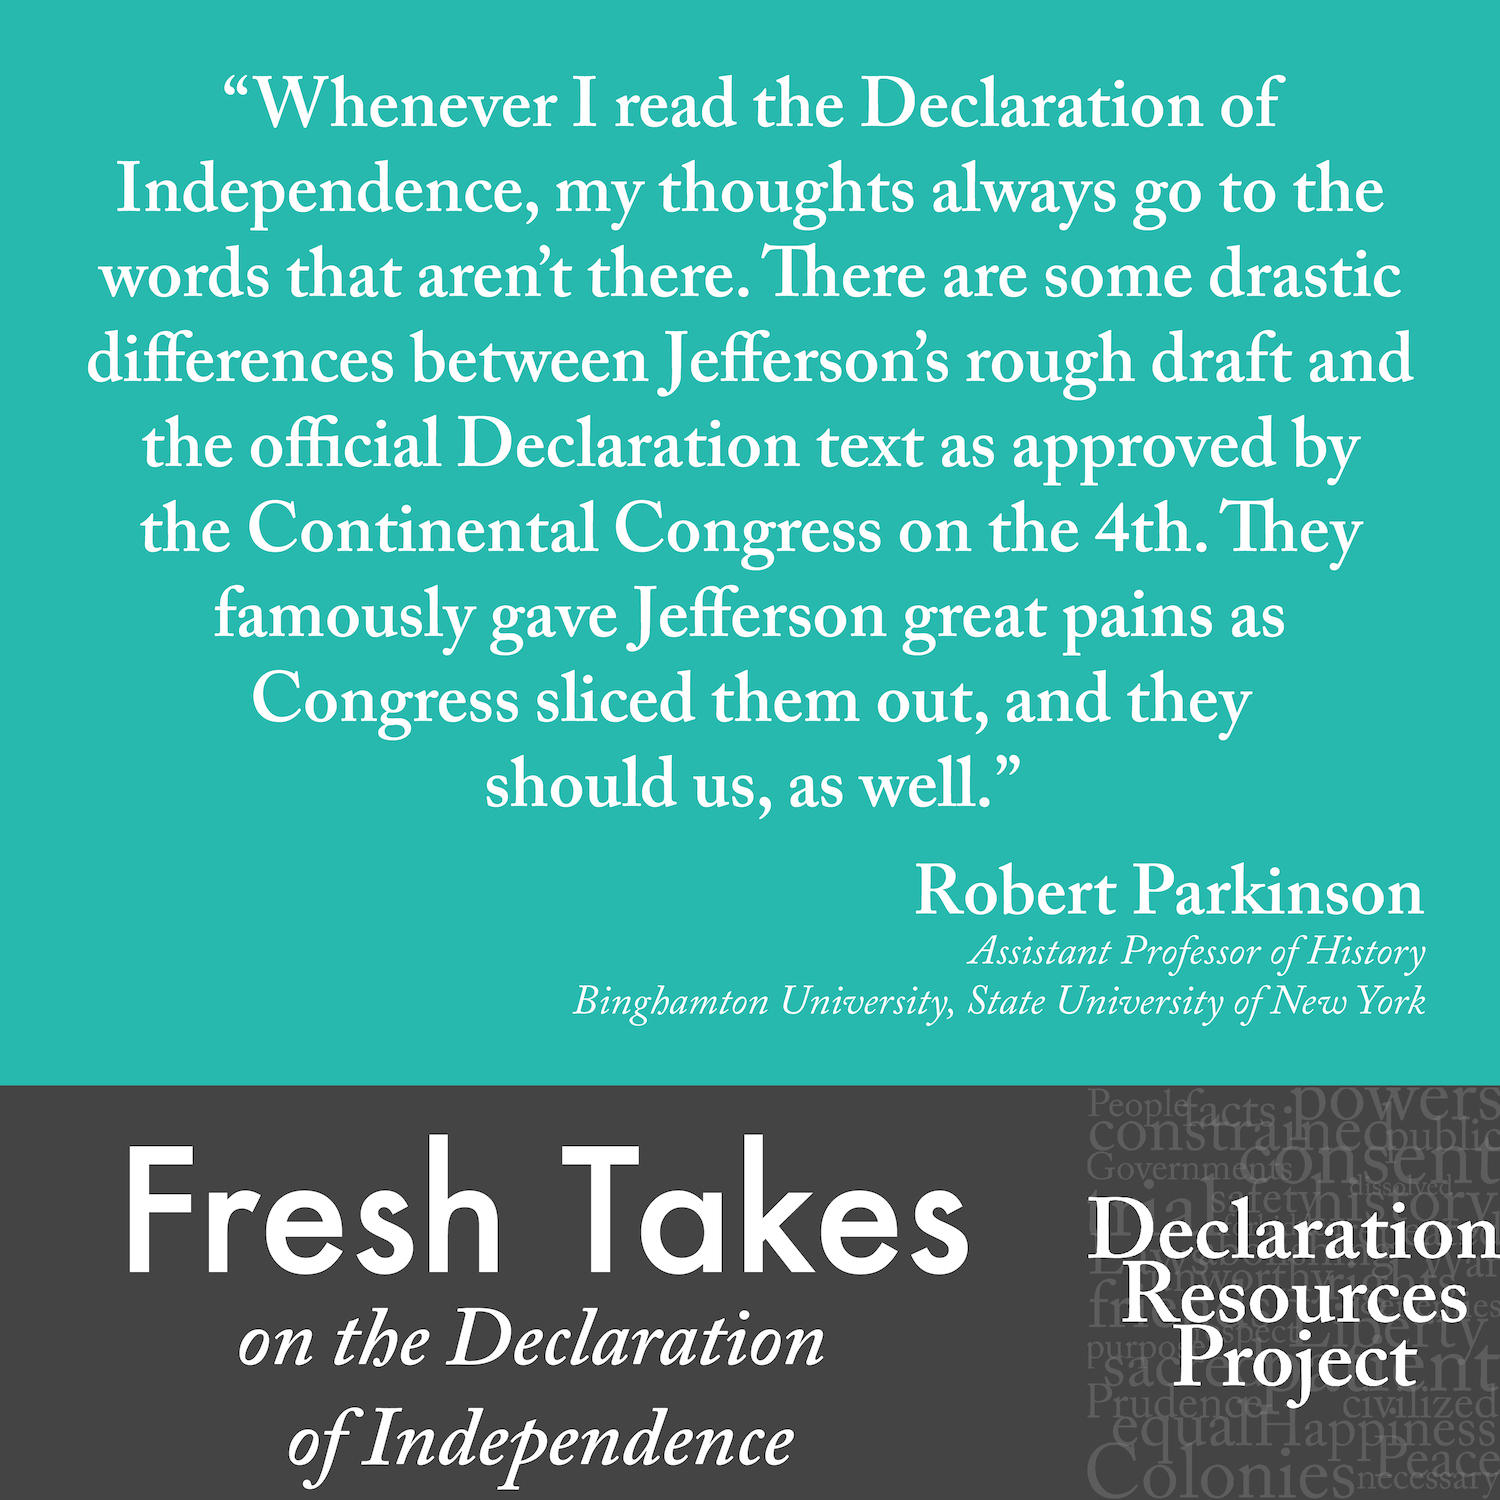 Robert Parkinson's Fresh Take on the Declaration of Independence